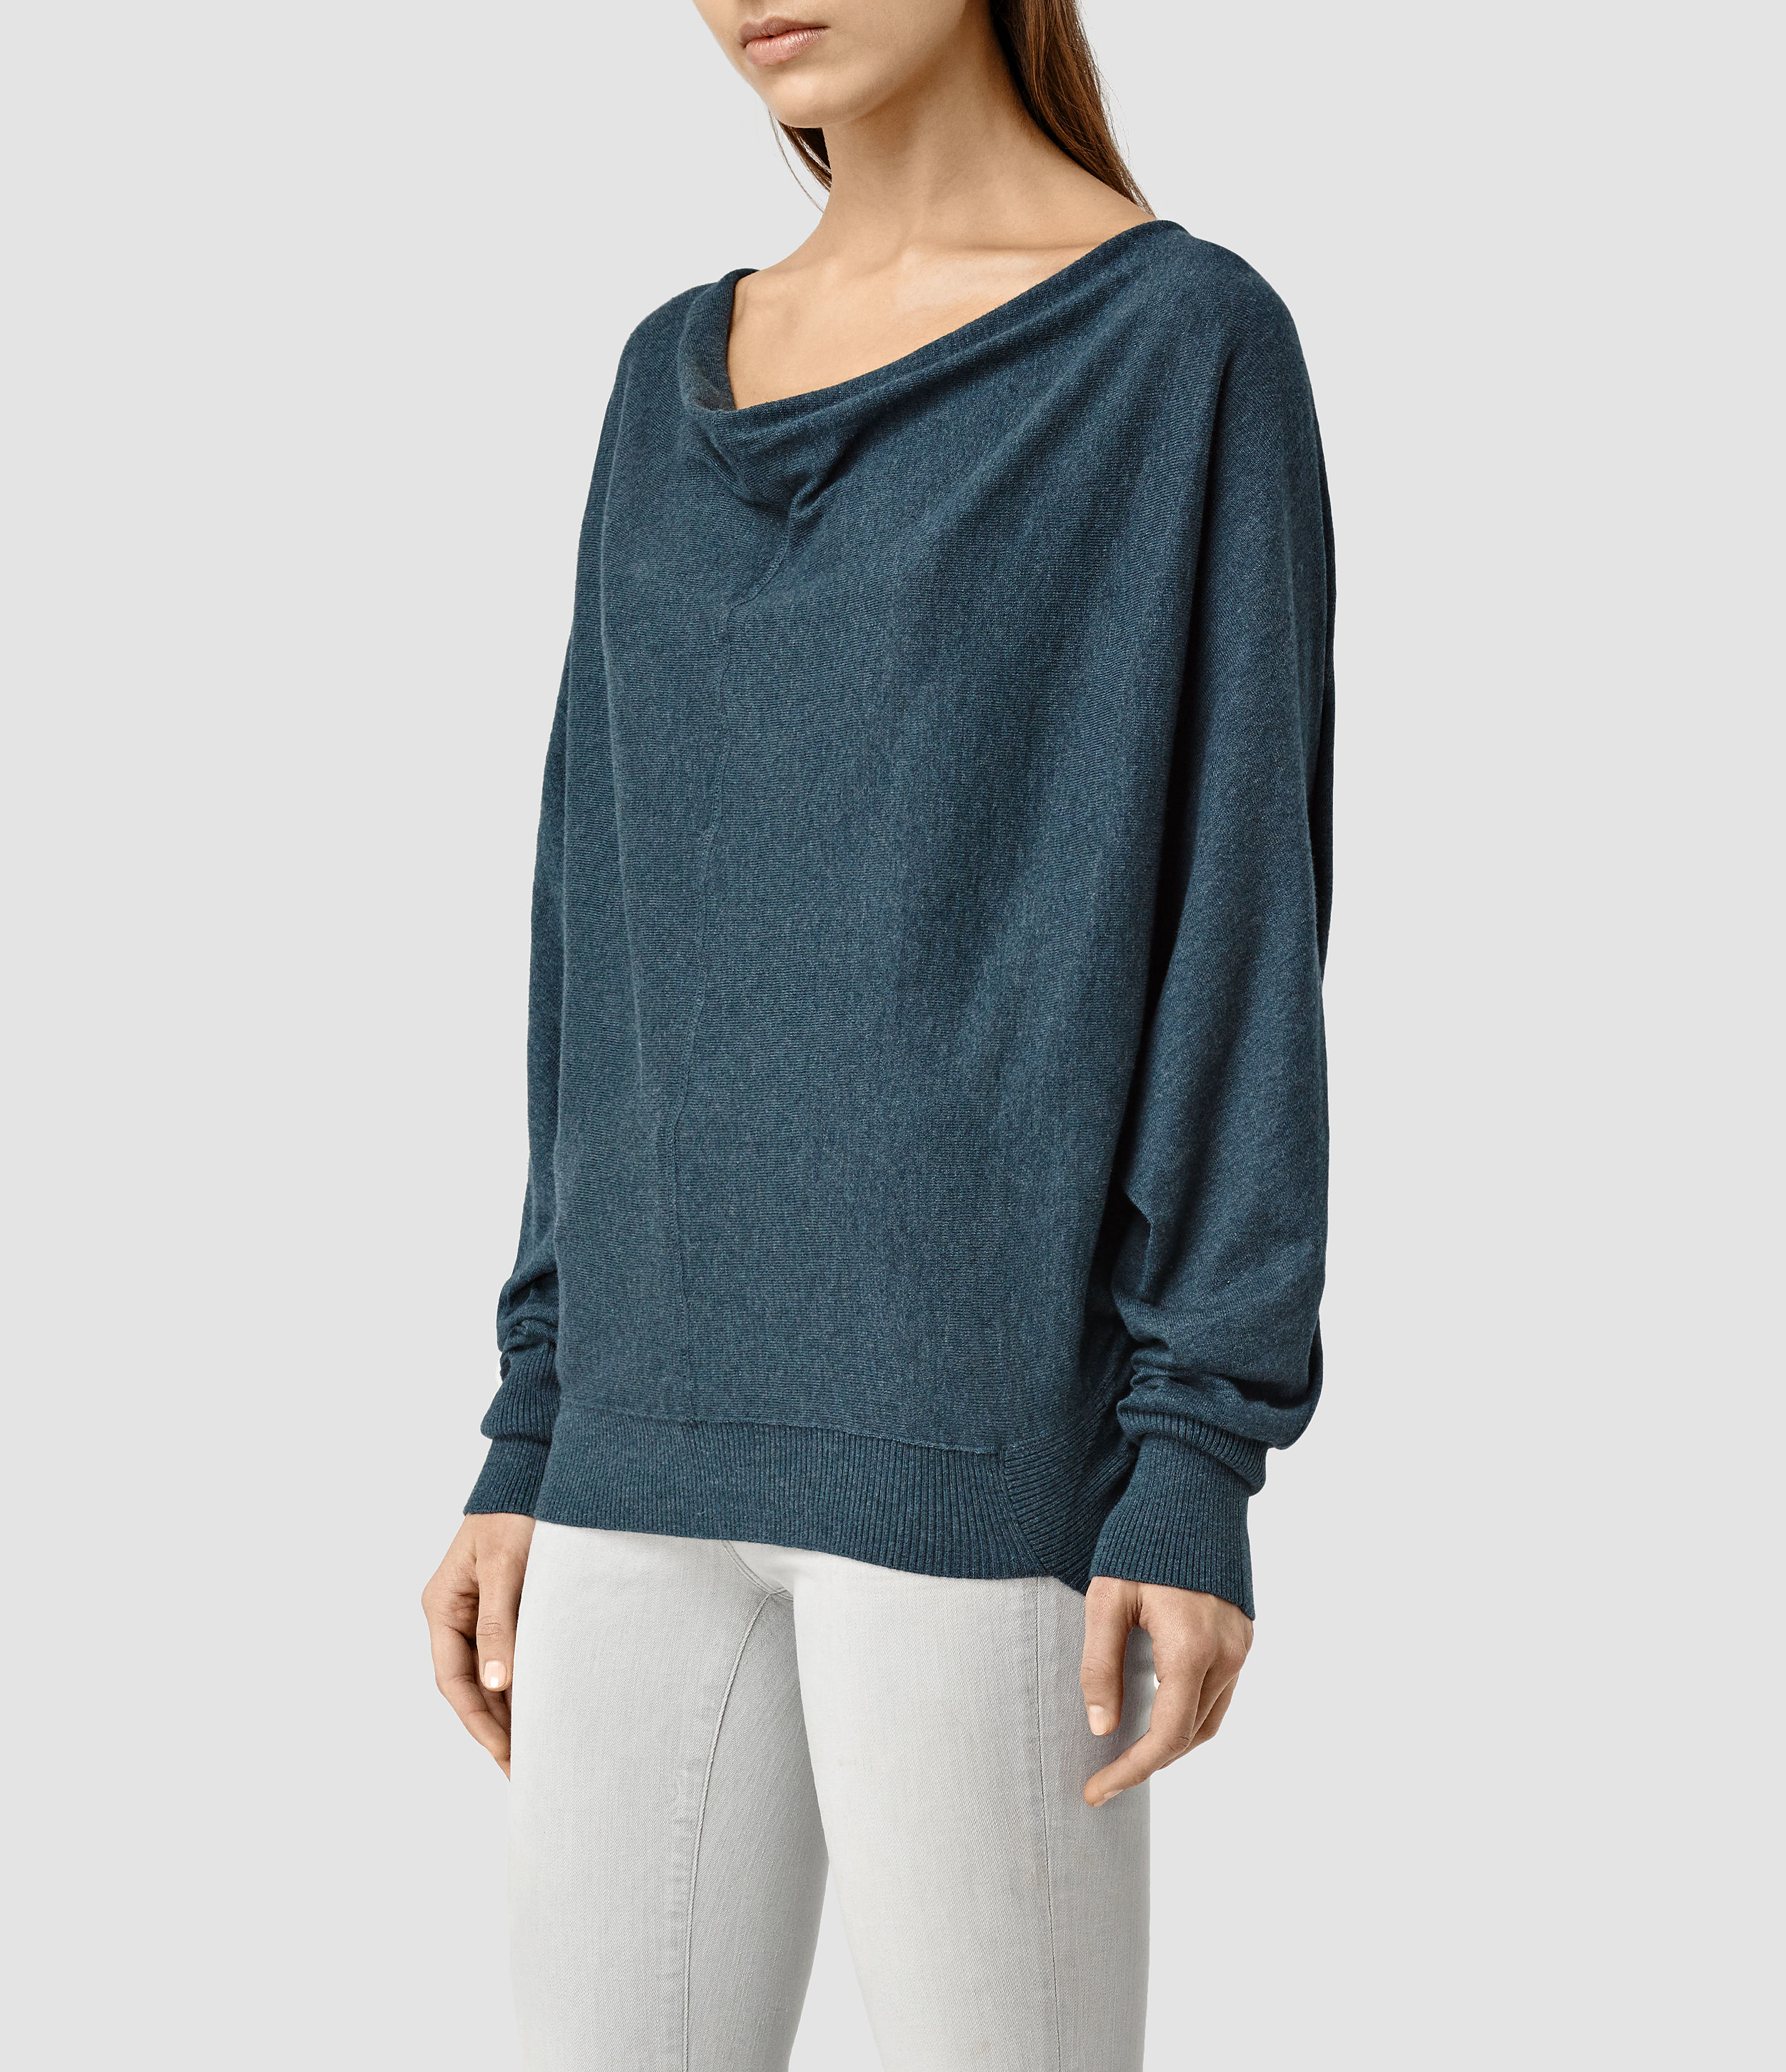 Allsaints Elgar Cowl Neck Sweater Usa Usa in Blue | Lyst